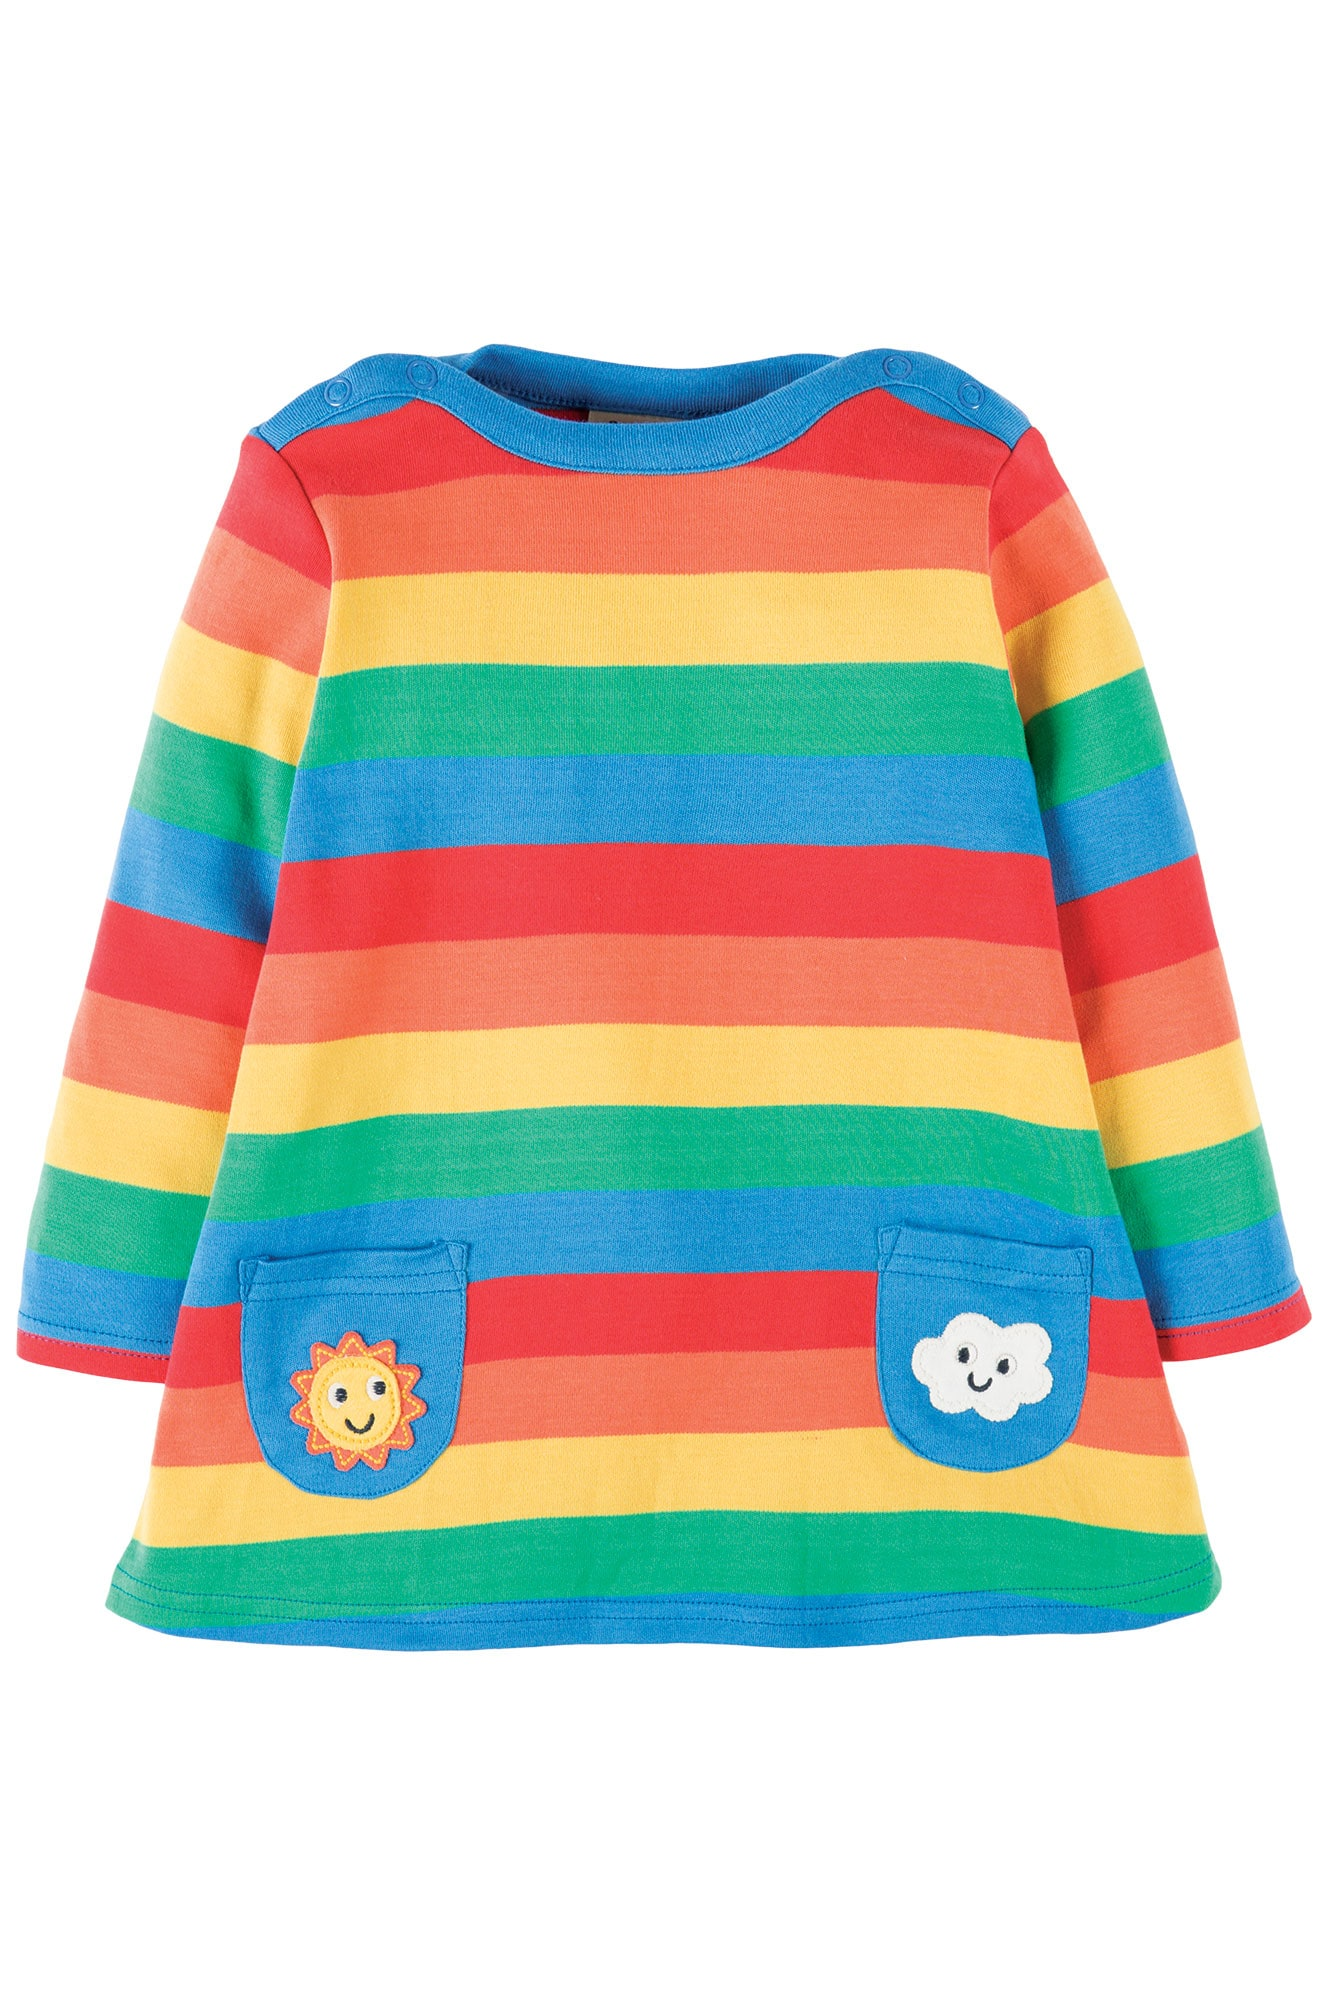 Frugi Rainbow dress